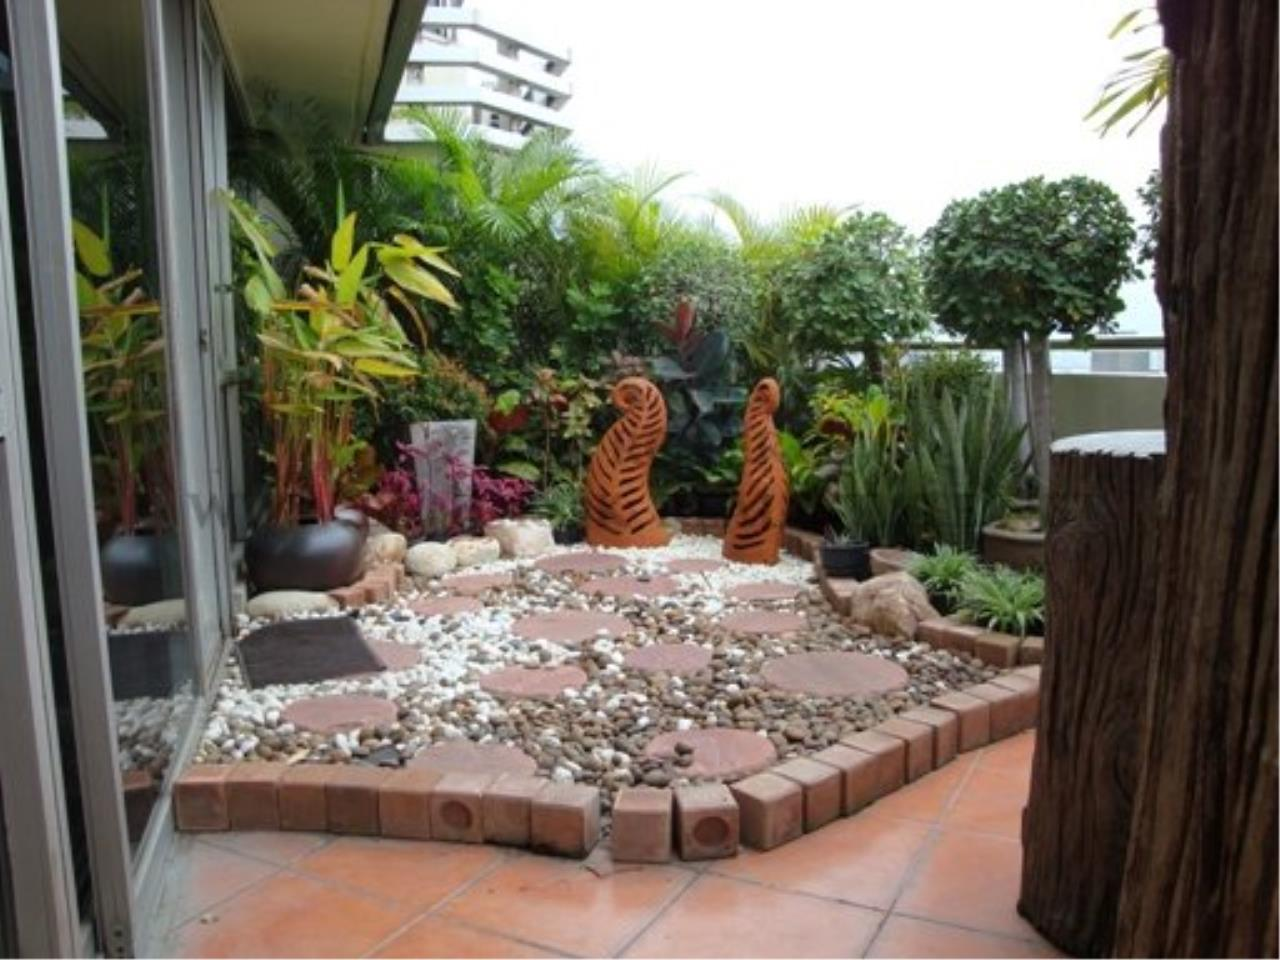 Piri Property Agency's 2 Bedroom Condo with great Outdoor Terrace of 40 SQM - Just a 5 minute walk to the BTS 6